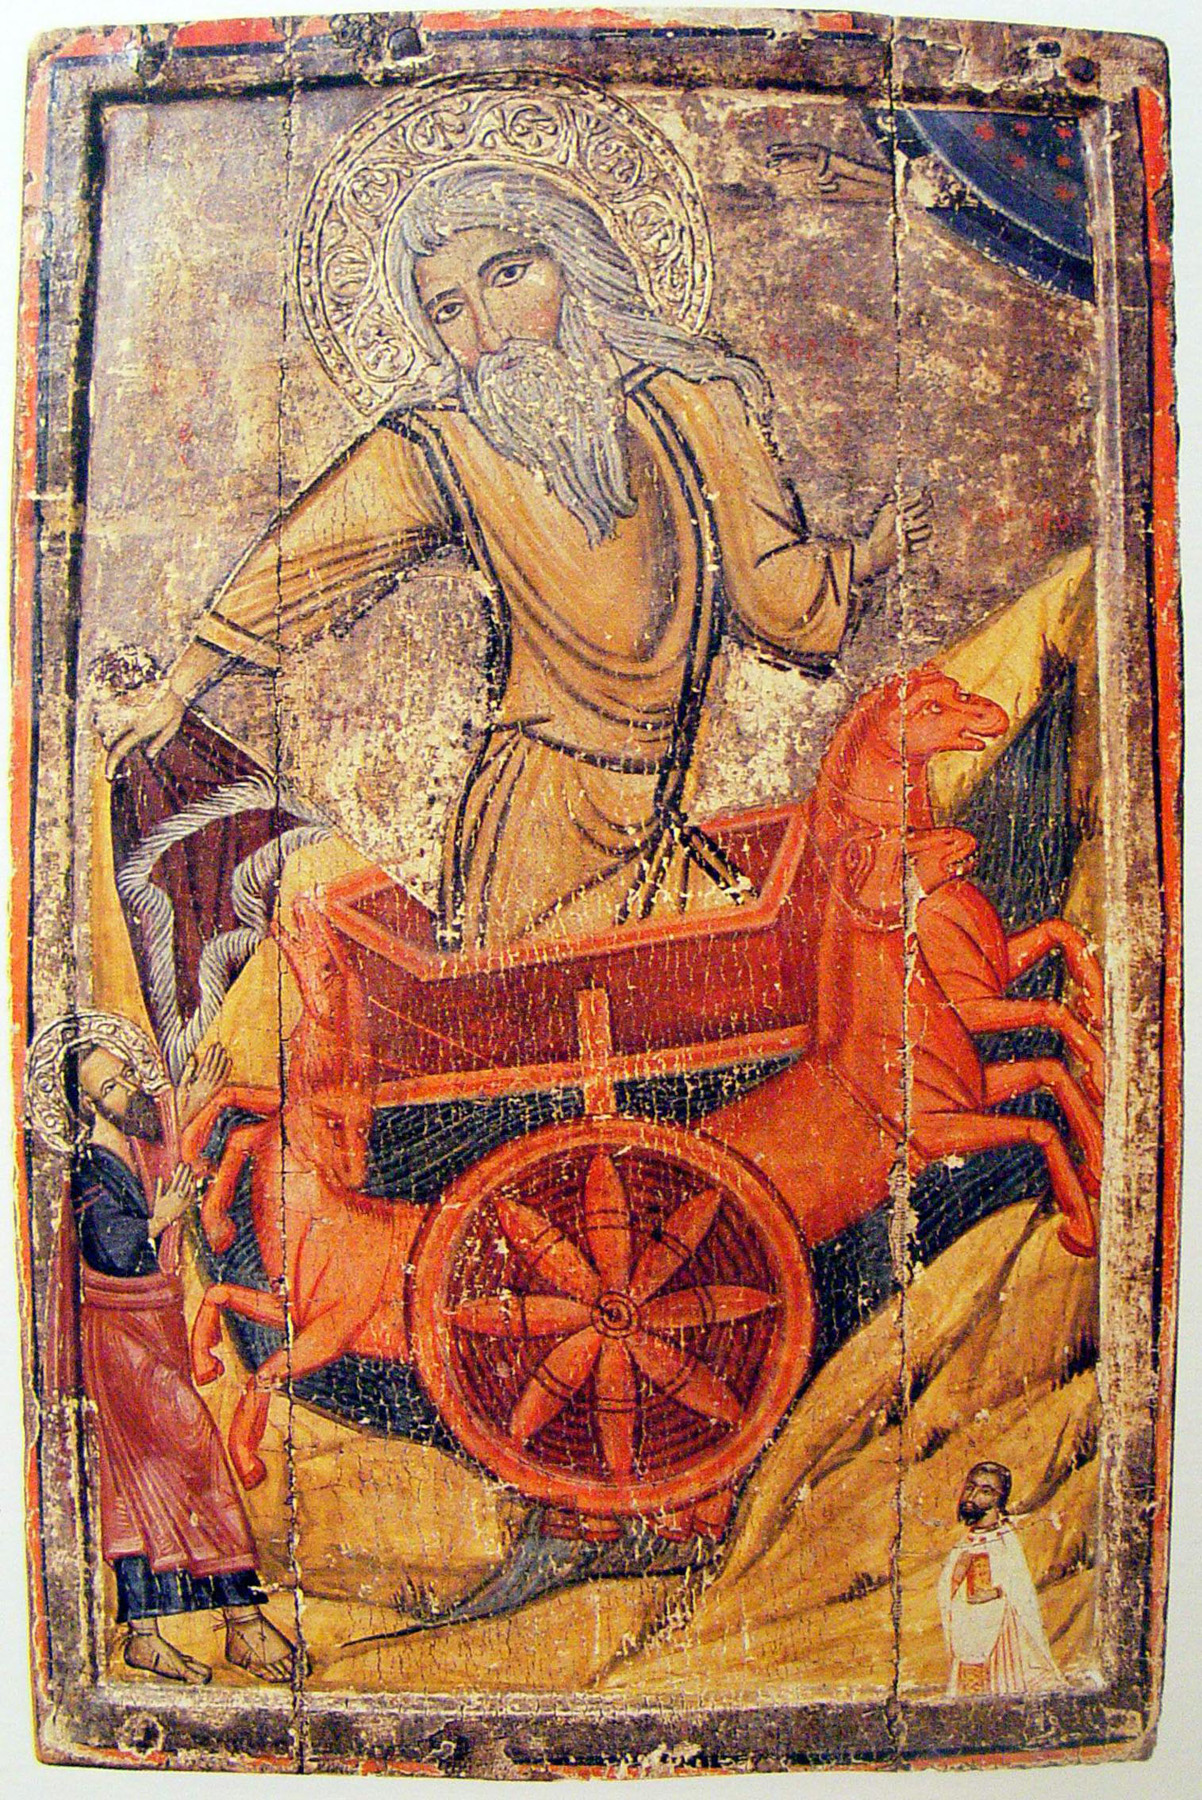 Category:7th century in art - Wikipedia